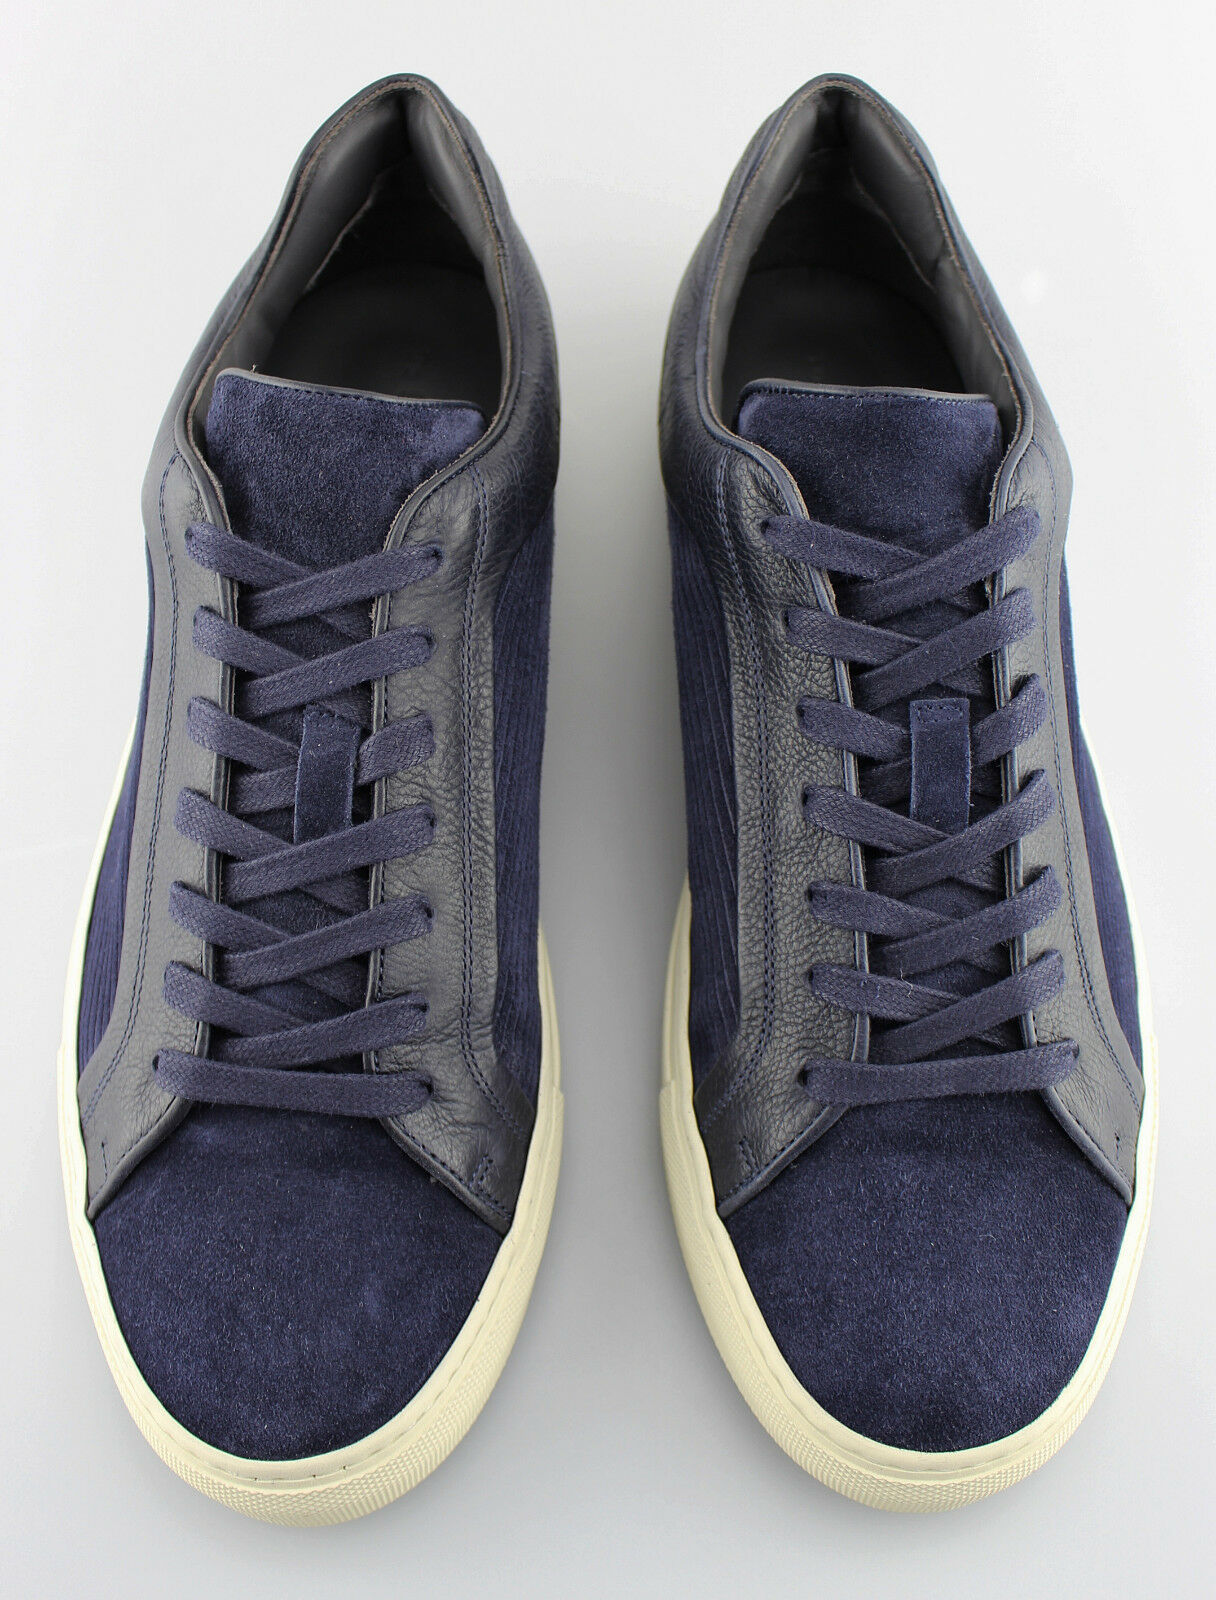 Men's TO BOOT BOOT TO NEW YORK 'Marshall' Blue Leather/Suede Sneakers Size US 10.5 - D bc22a0